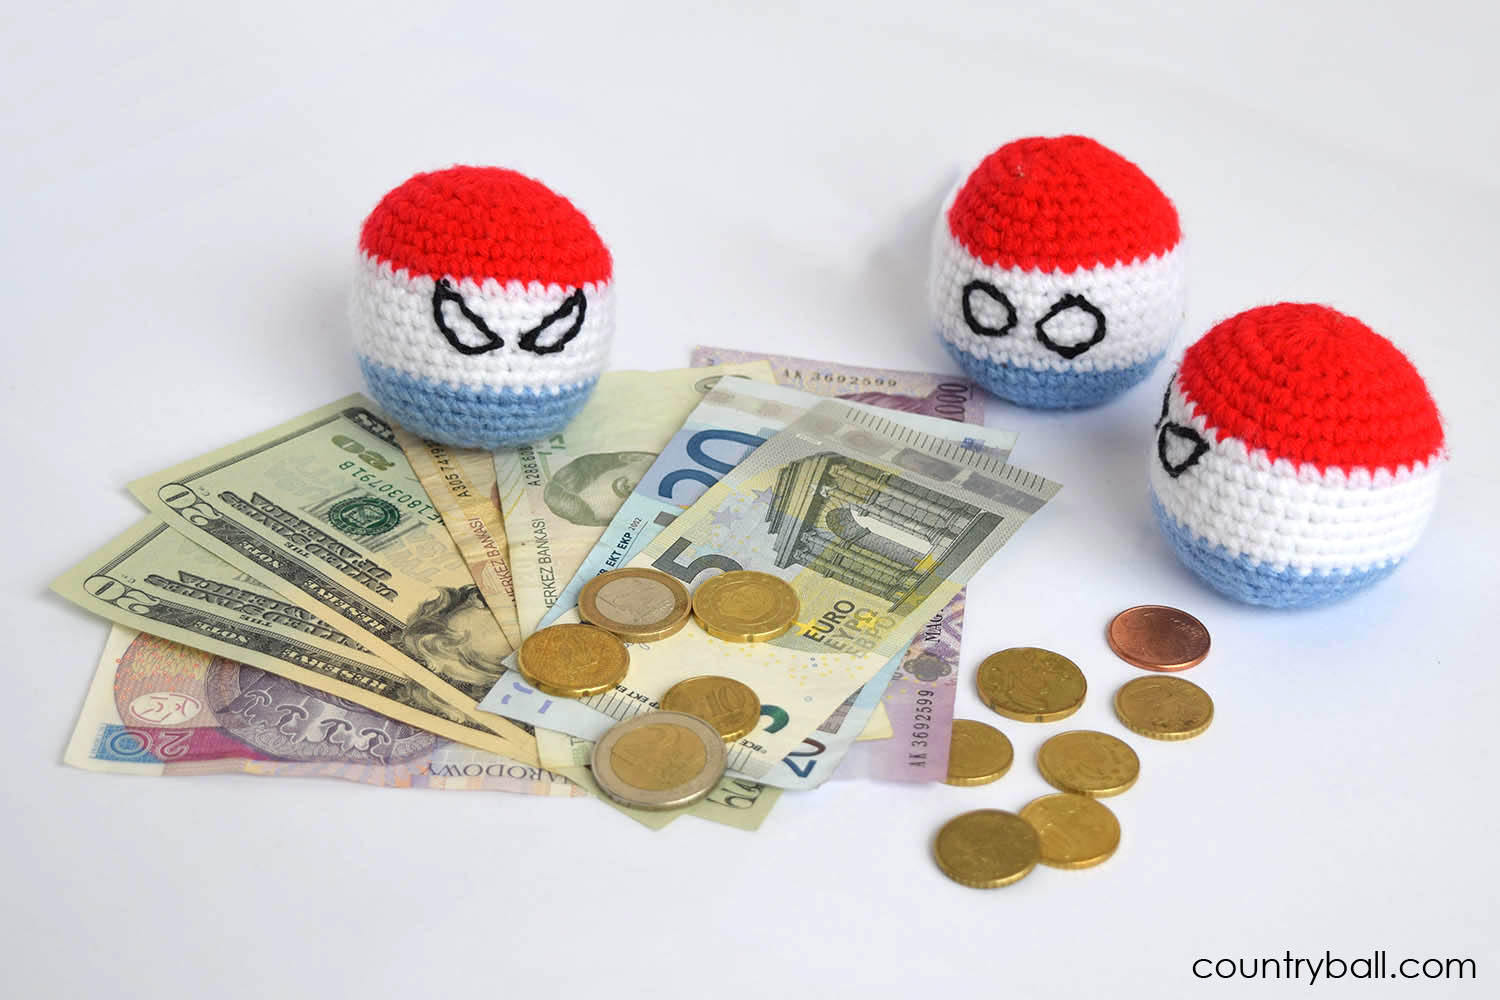 Luxembourgball Takes Care of the Money